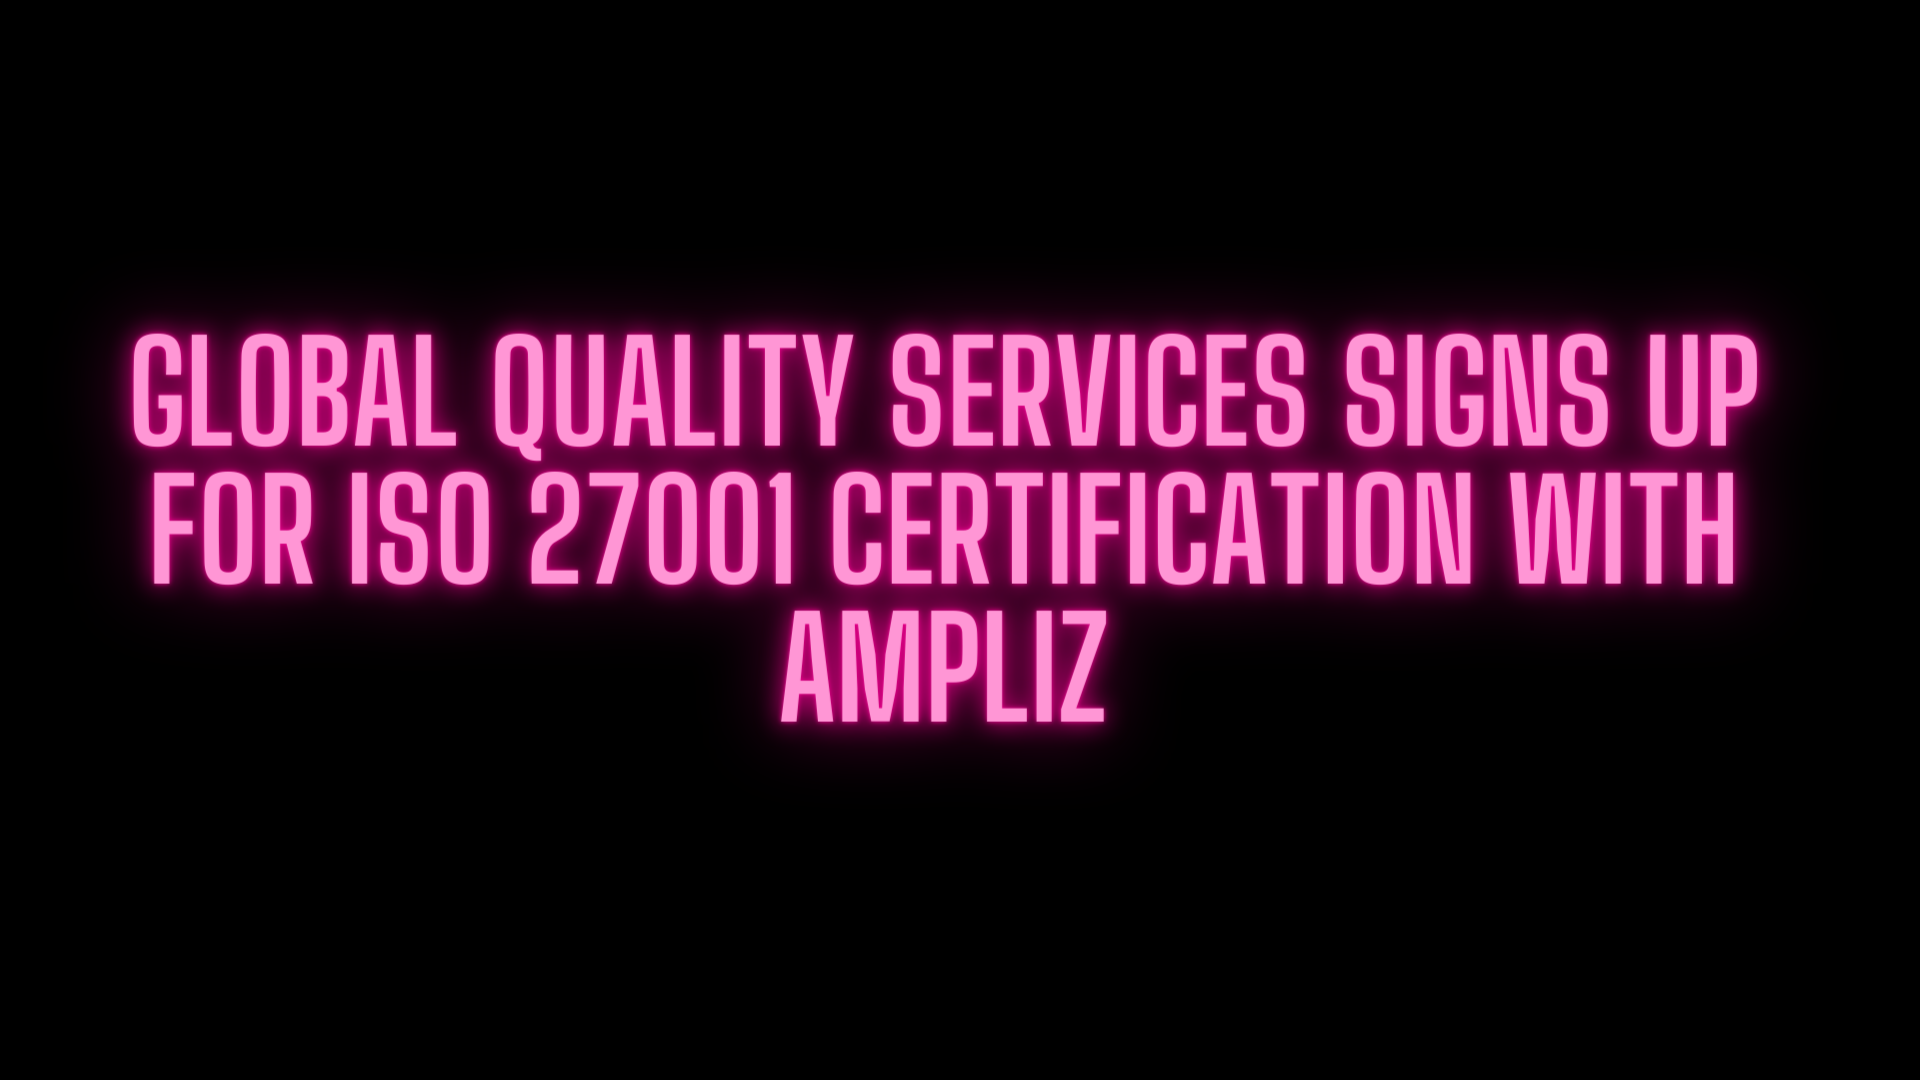 Global quality services signs up for ISO 27001 certification with Ampliz